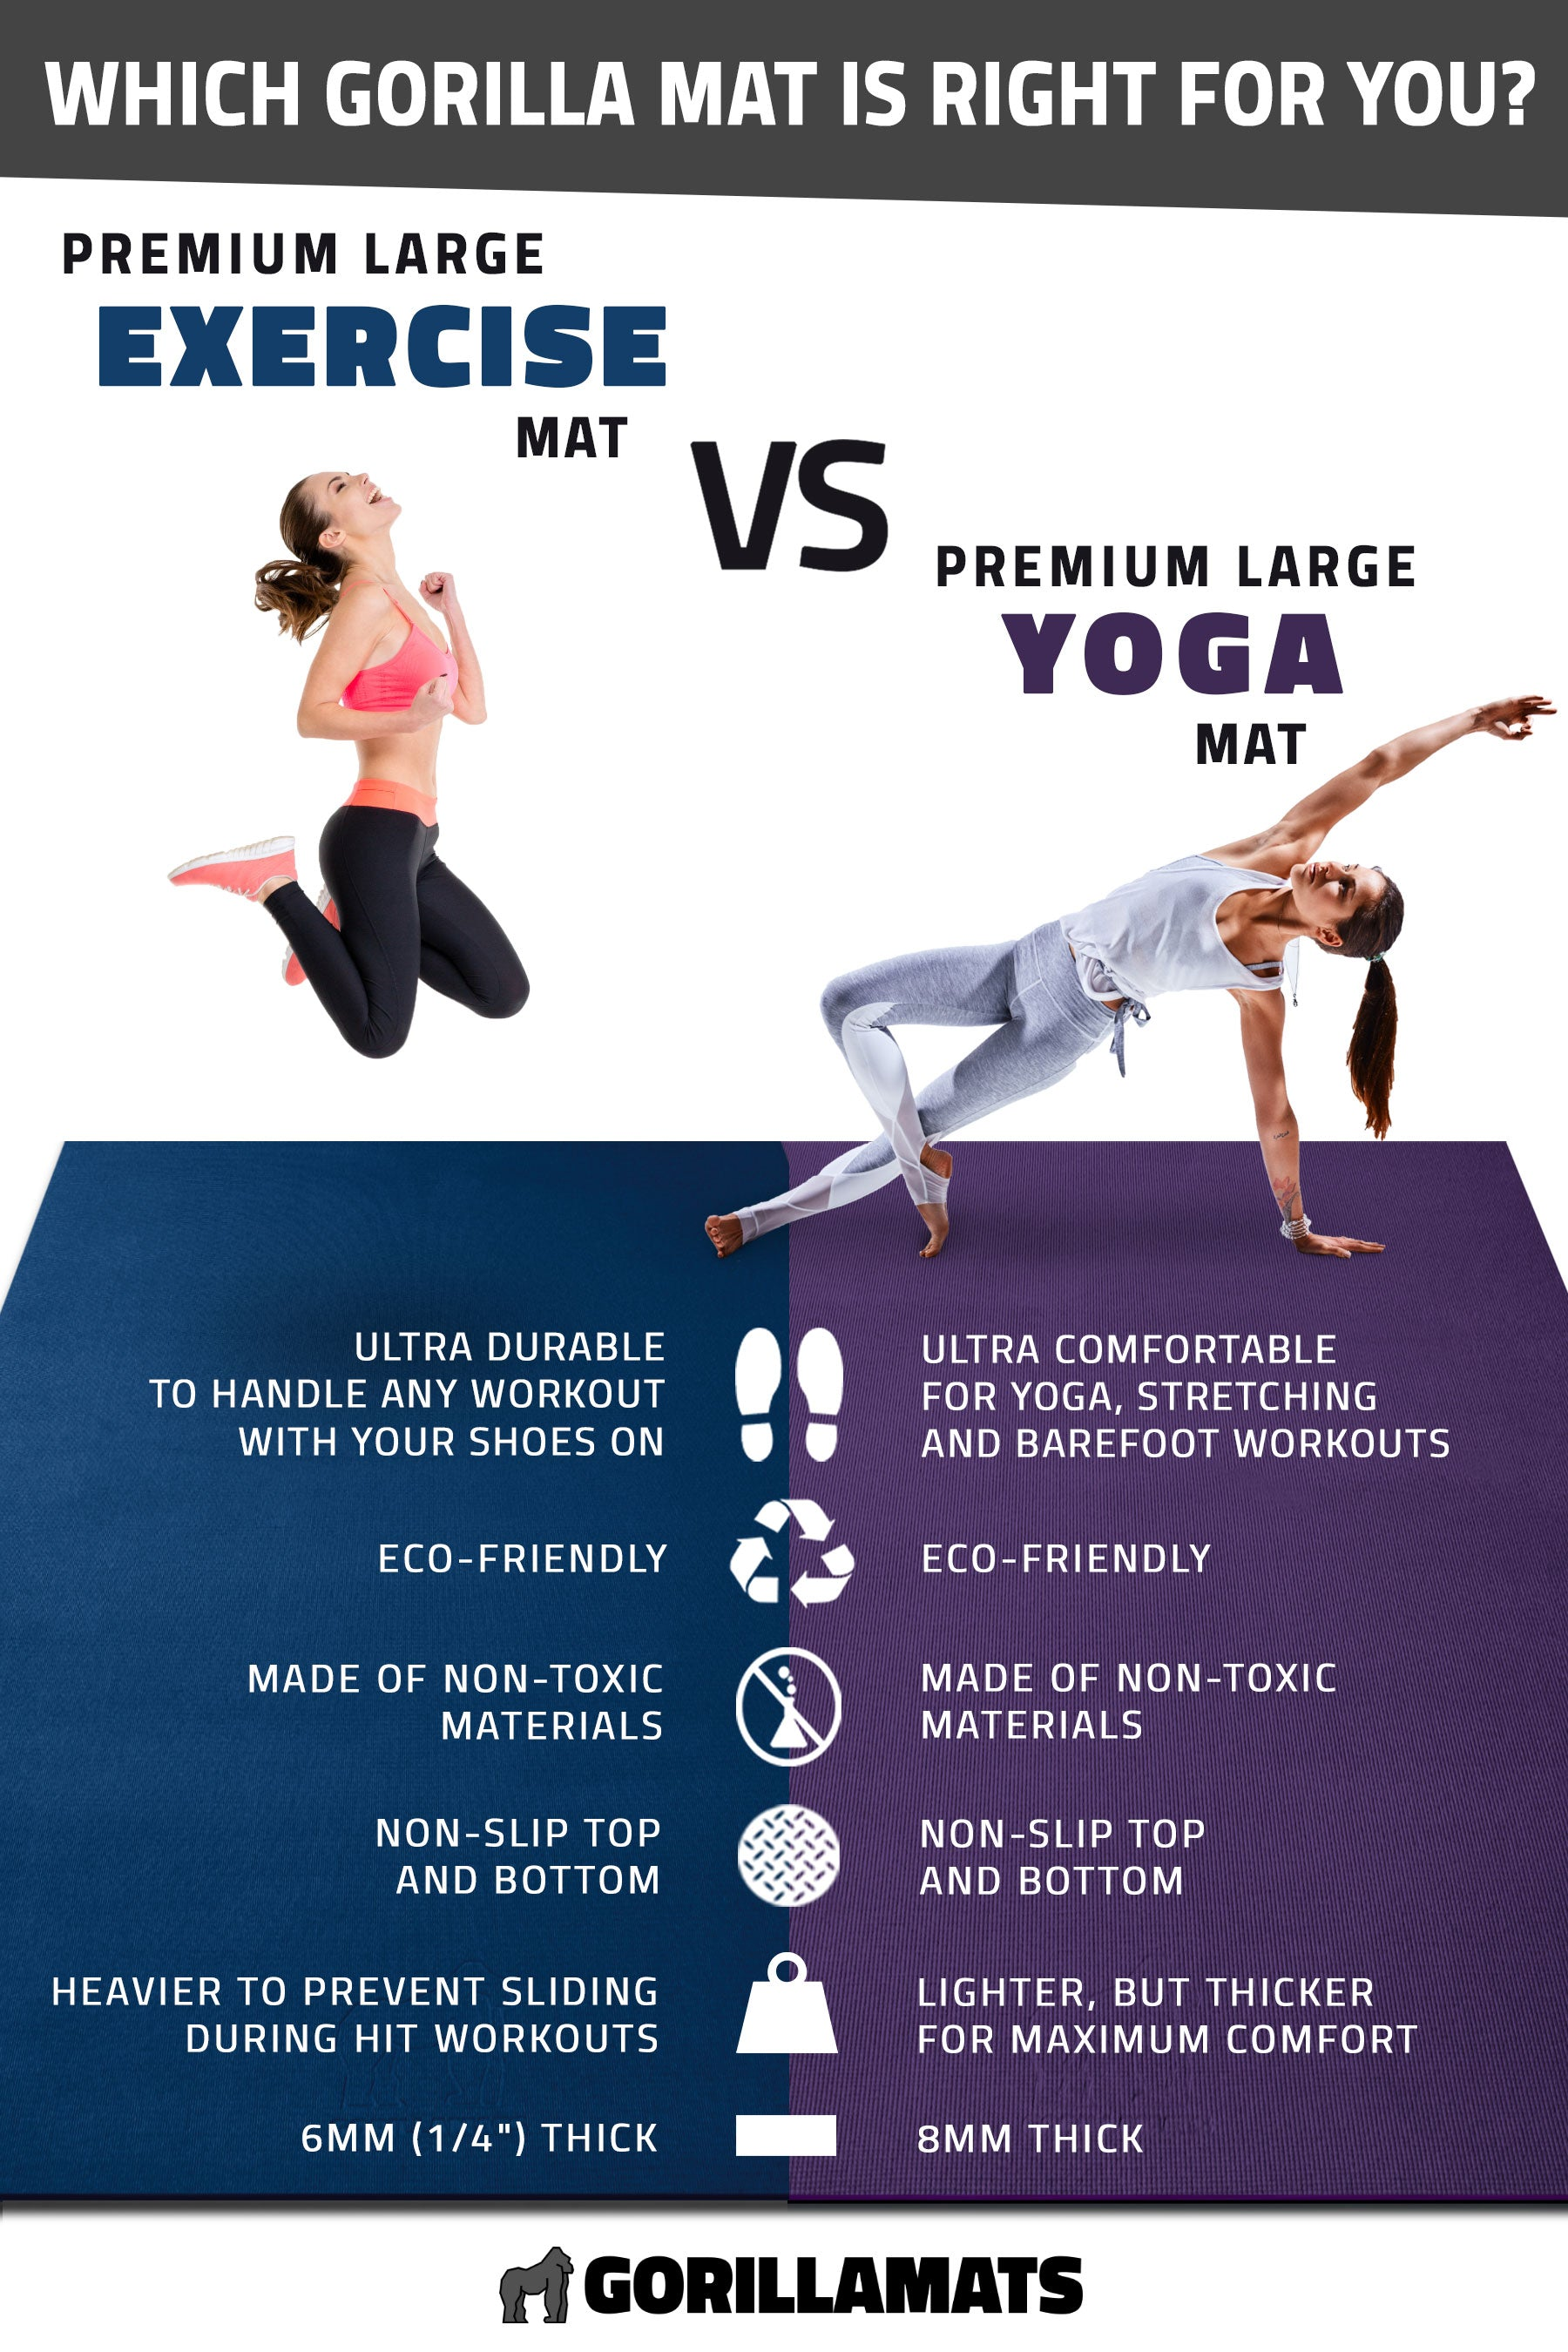 Exercise vs Yoga Mat - Gorilla Mats